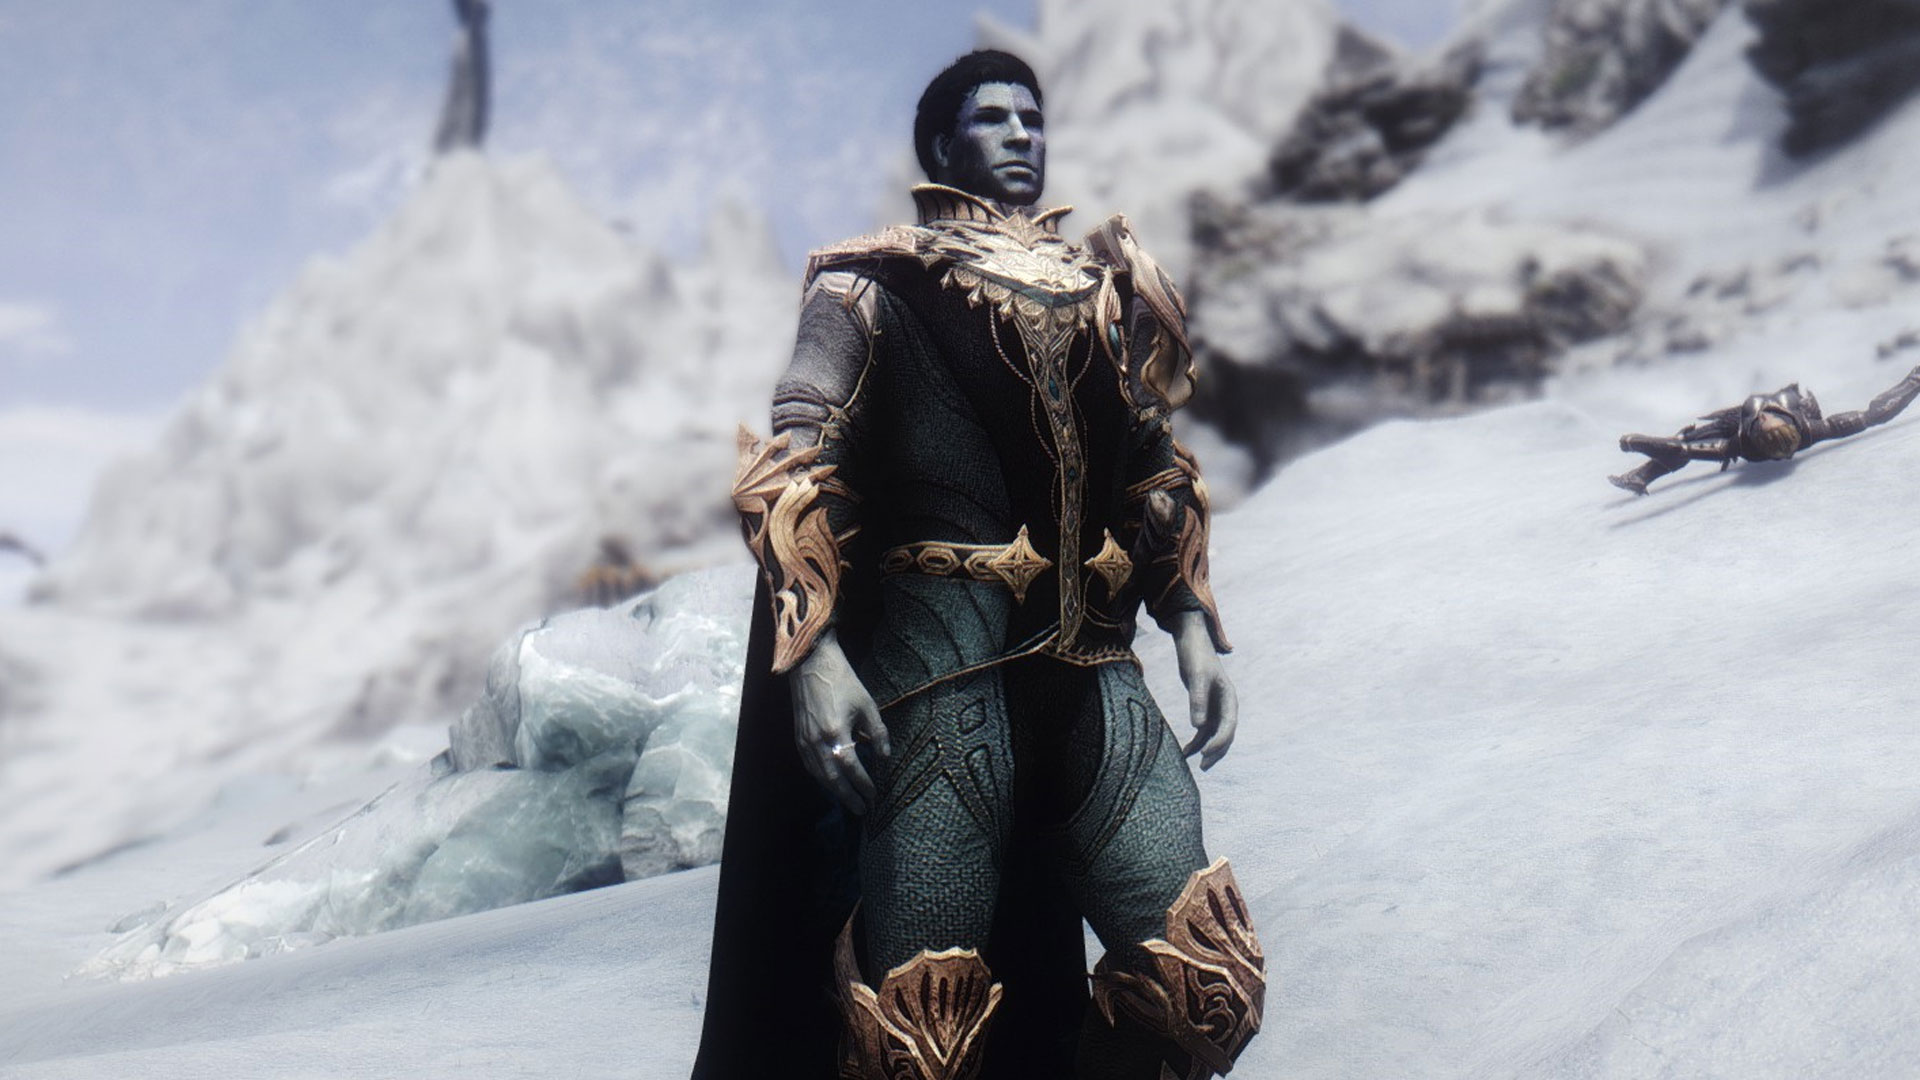 Skyrim: Special Edition Invasion of Skyrim - Grand Admiral Thrawn 3.0 Mod